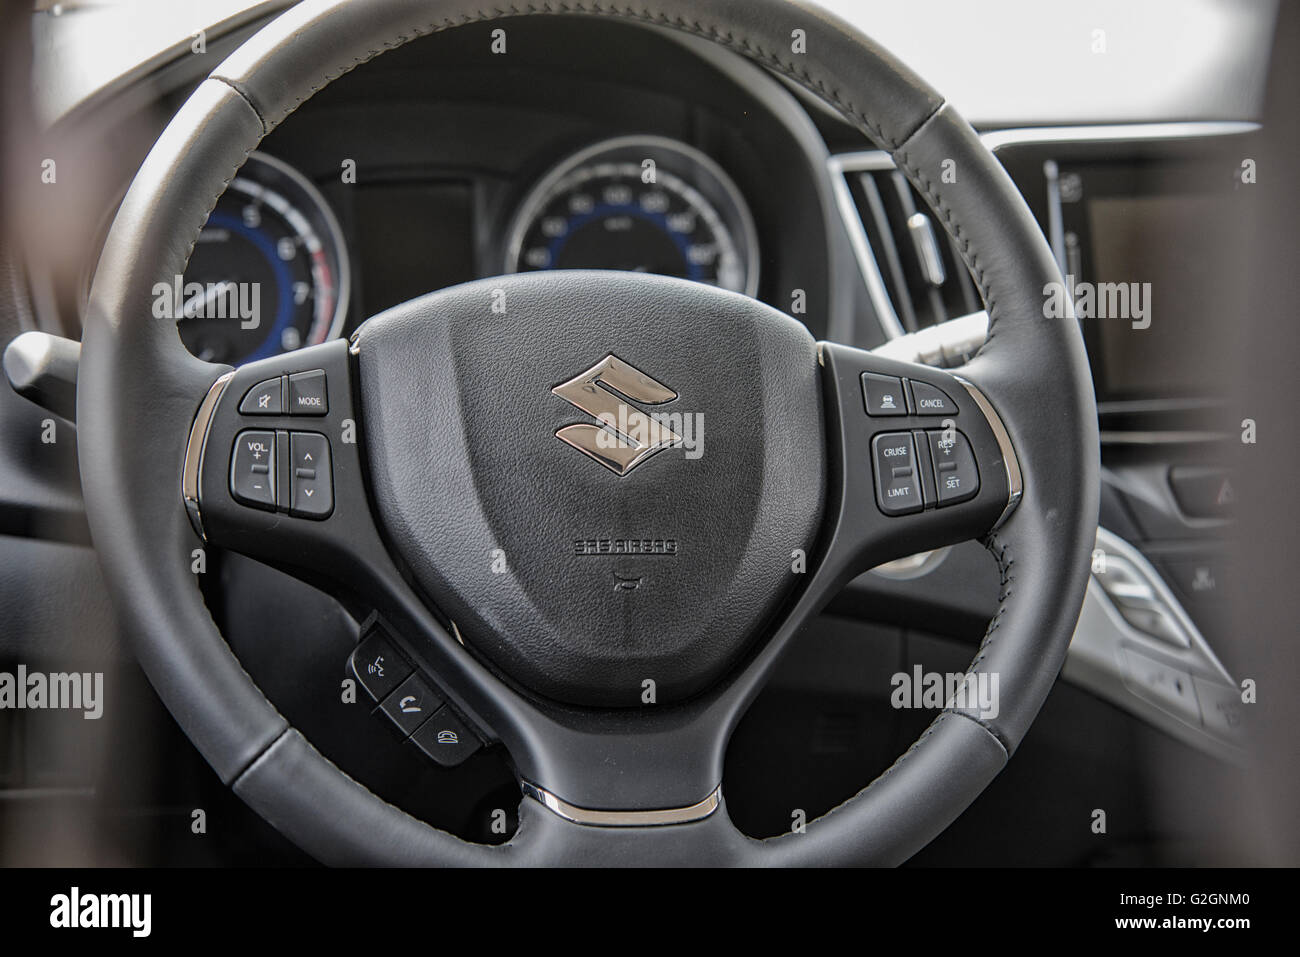 Wroclaw, Poland, May 28, 2016: Close up on Suzuki Baleno sterring wheel  on Motoshow on May 28, 2016 in Poland - Stock Image